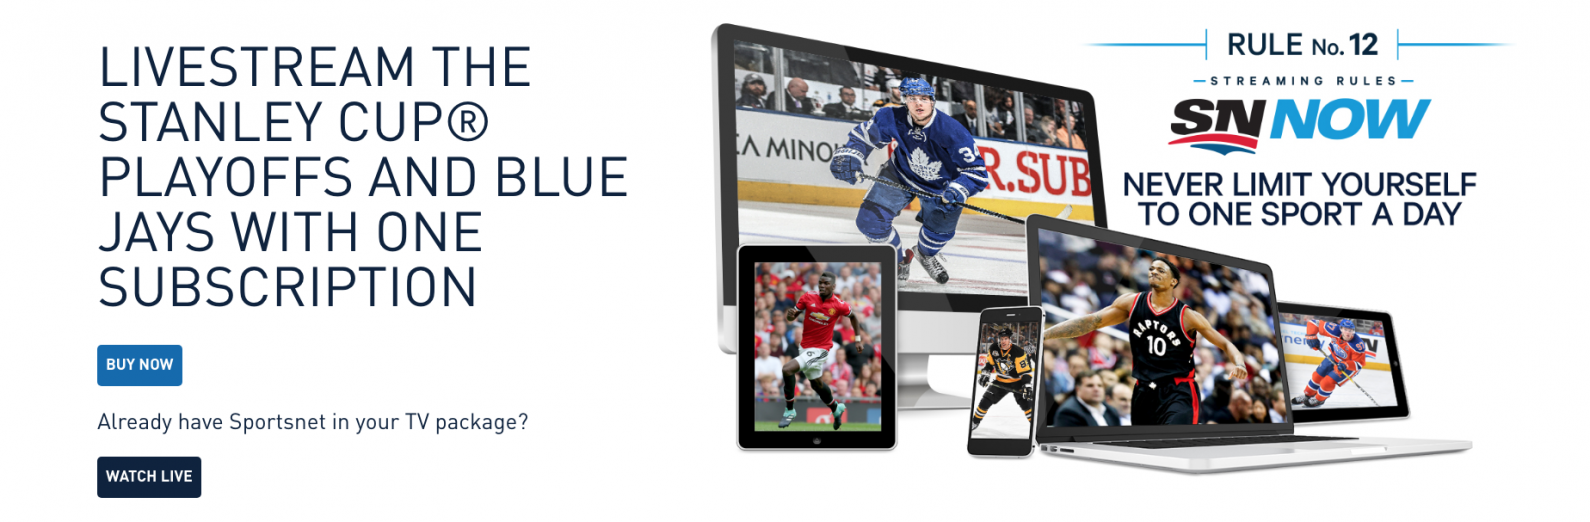 How to Stream the 2018 NHL Playoffs Live on Your Apple TV